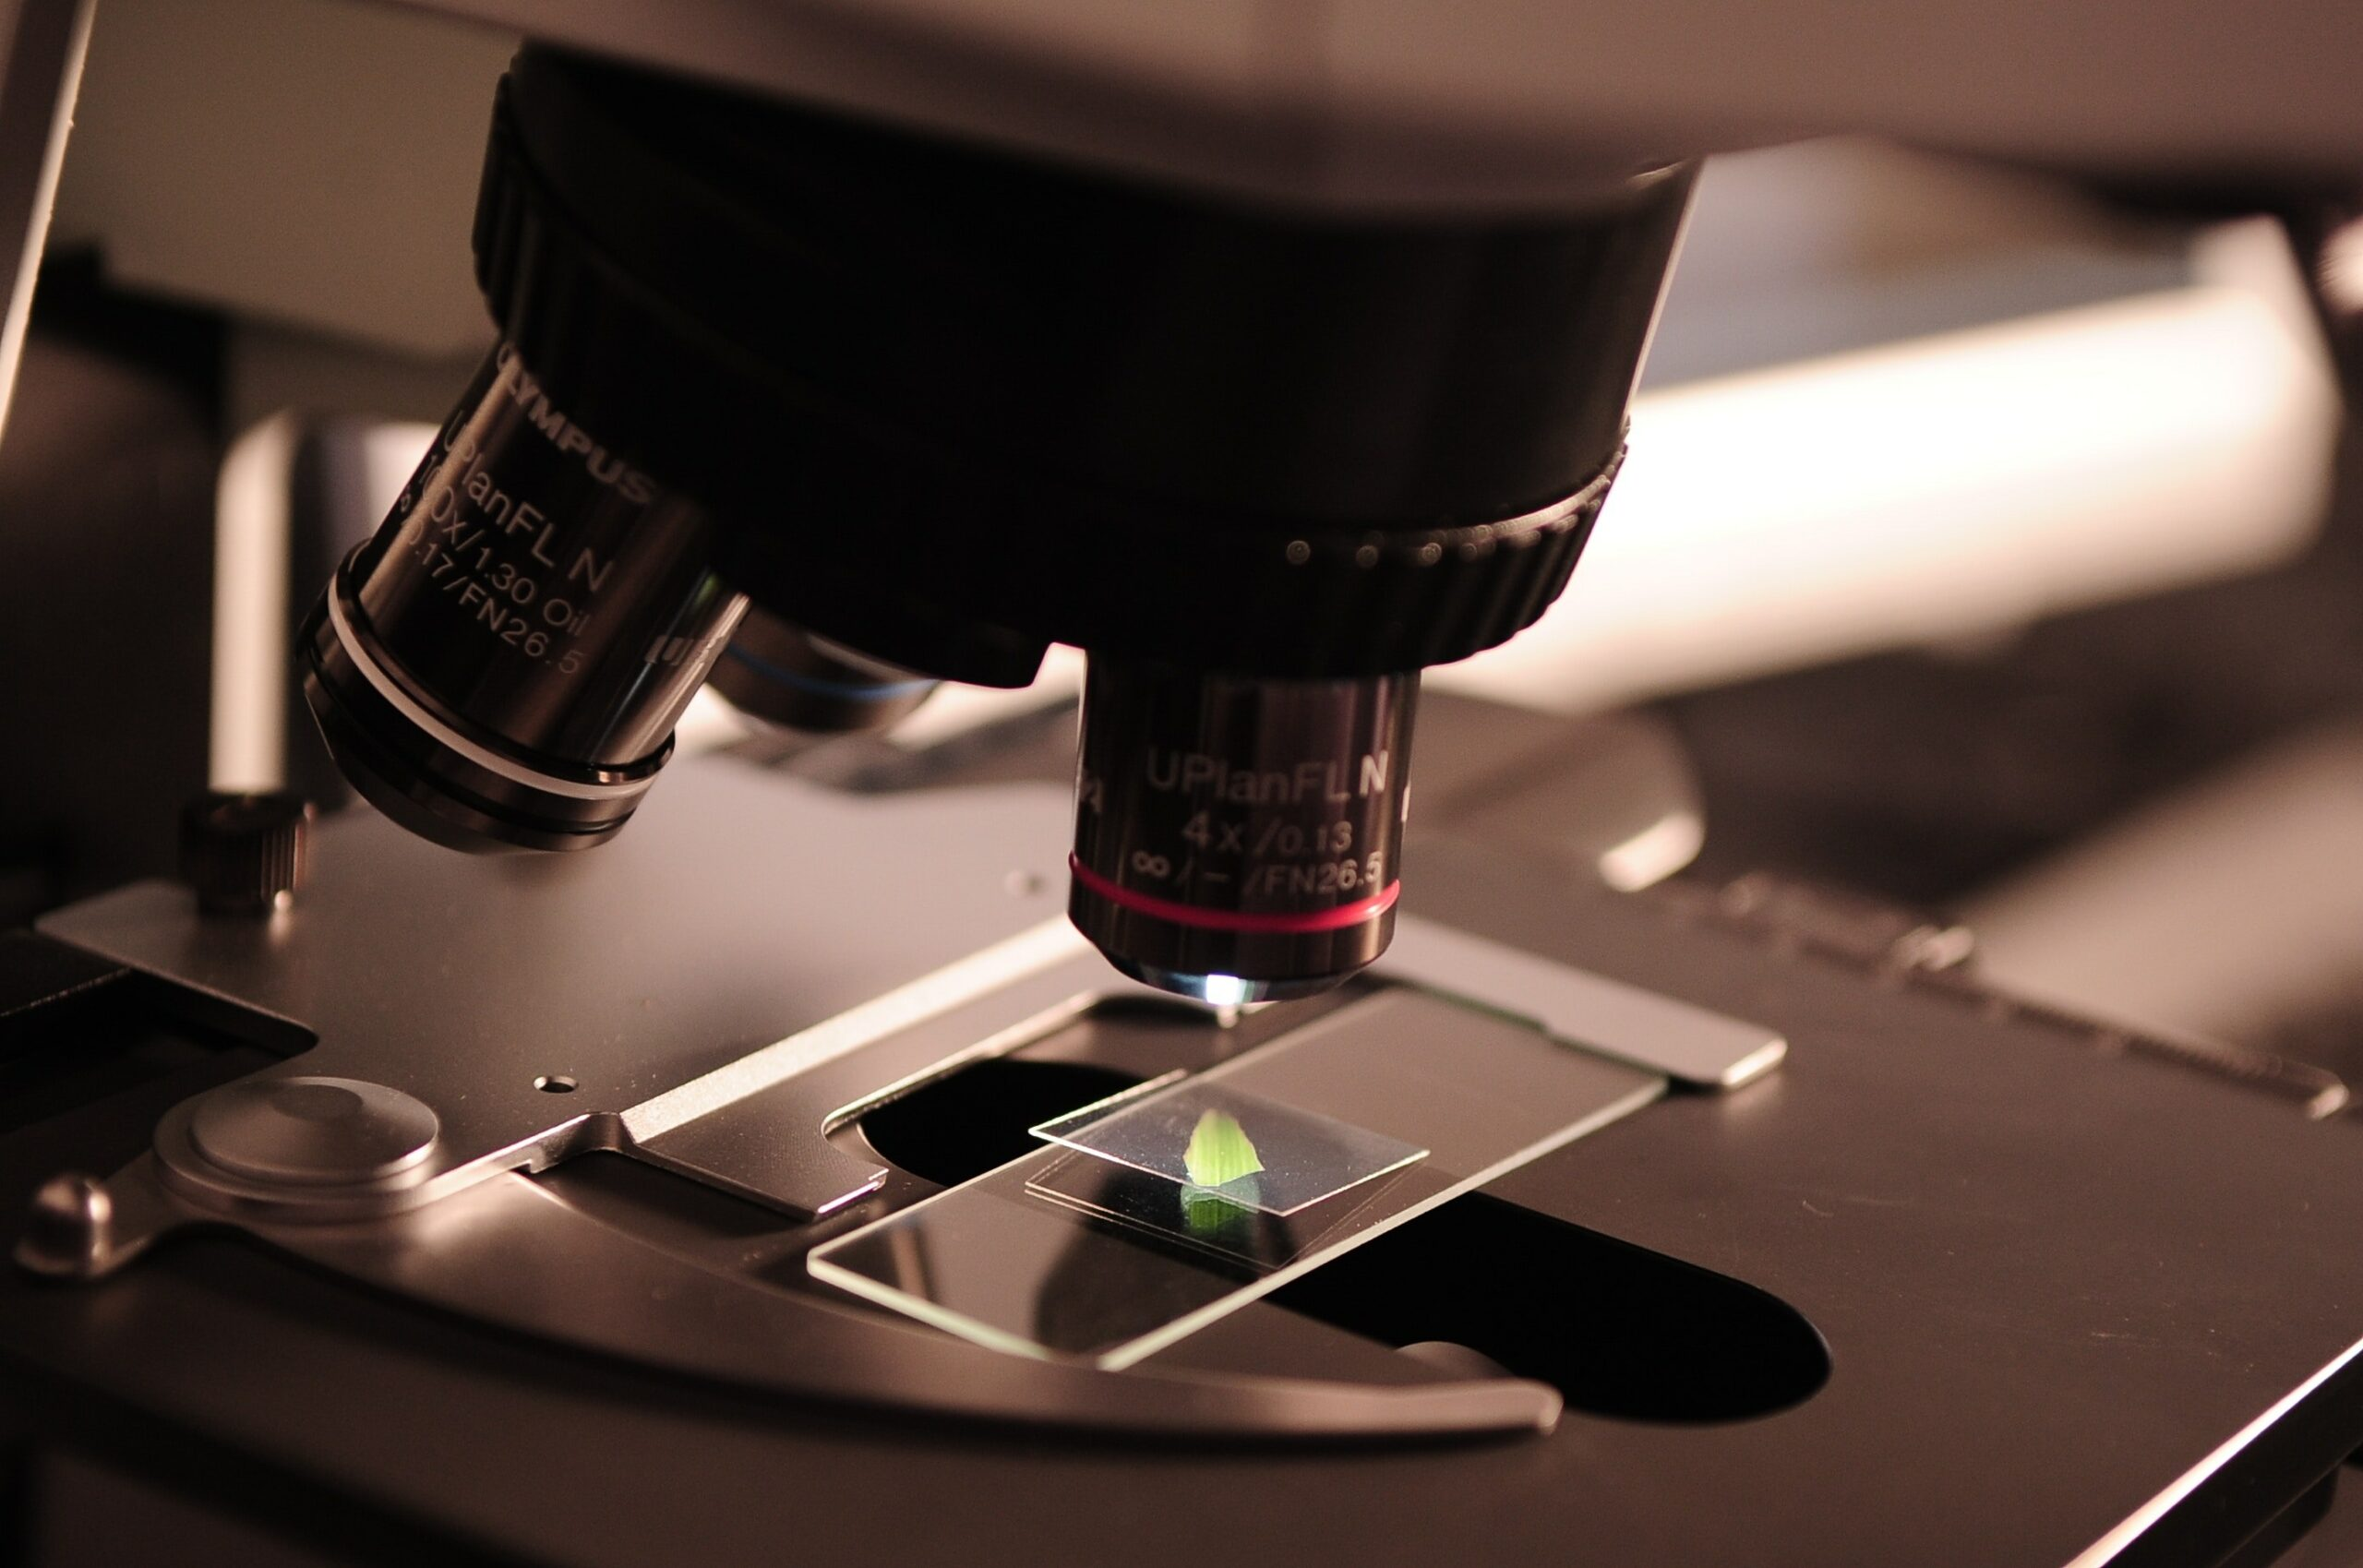 Tumor biomarkers. What are they and what are they for?